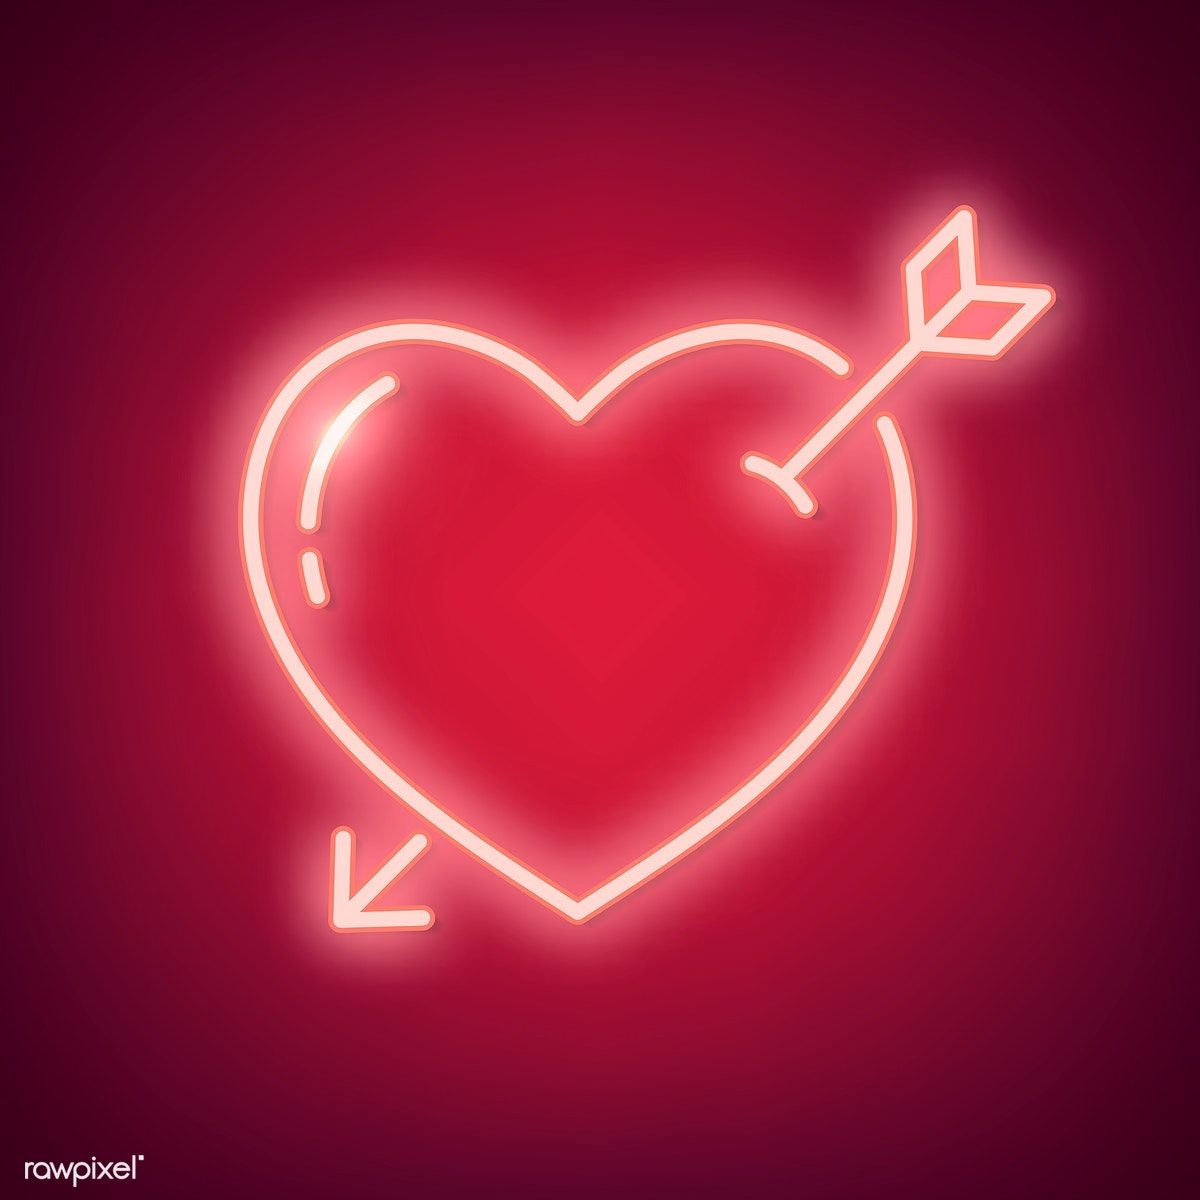 Download free illustration of Neon light heart icon on red